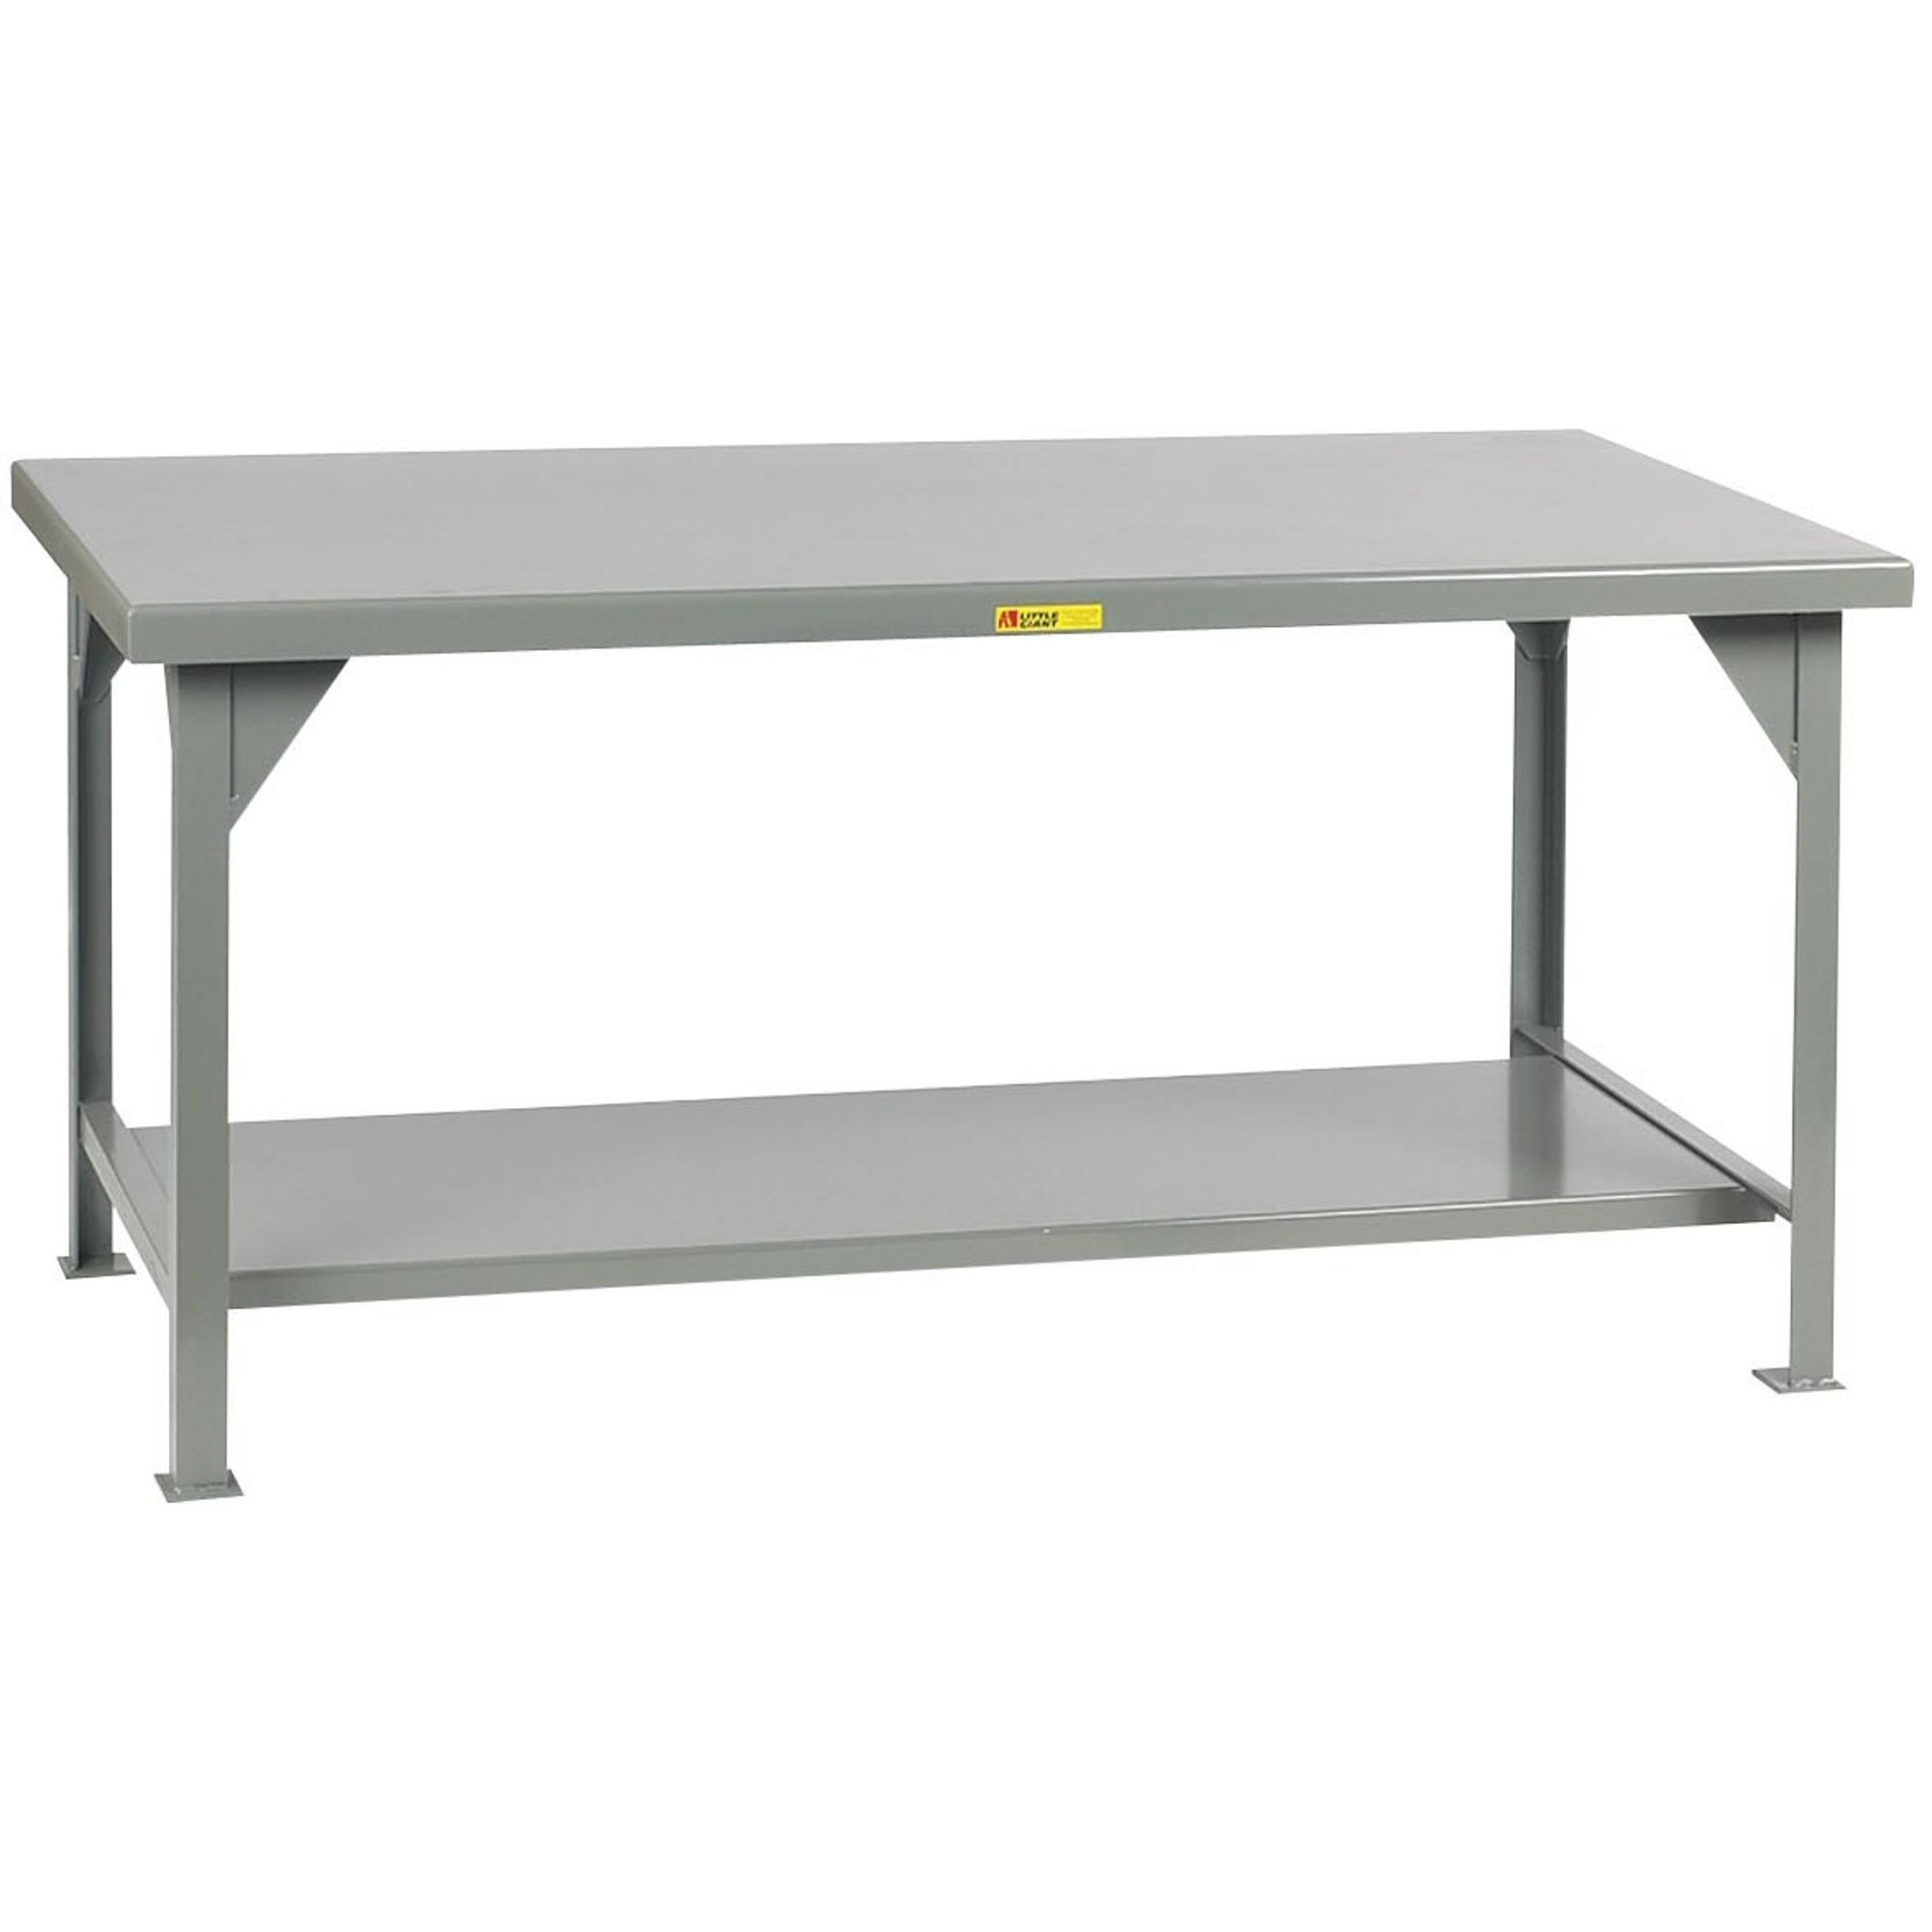 Metal Workbench | Metal Workbench with Wheels | Metal Workbench Legs Kit